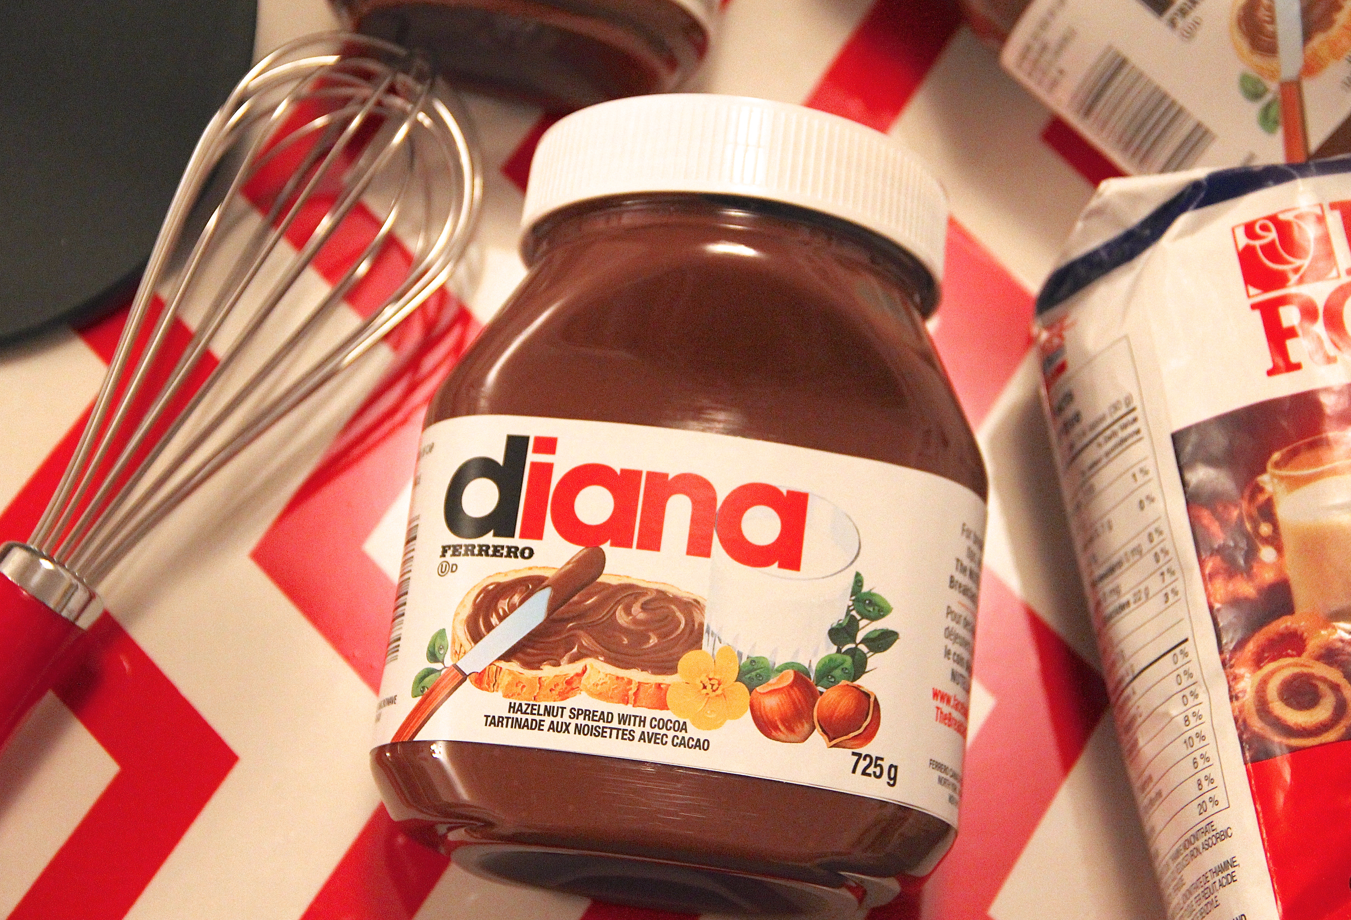 Add a Little Joy with a Personalized Nutella Jar and Gift Basket